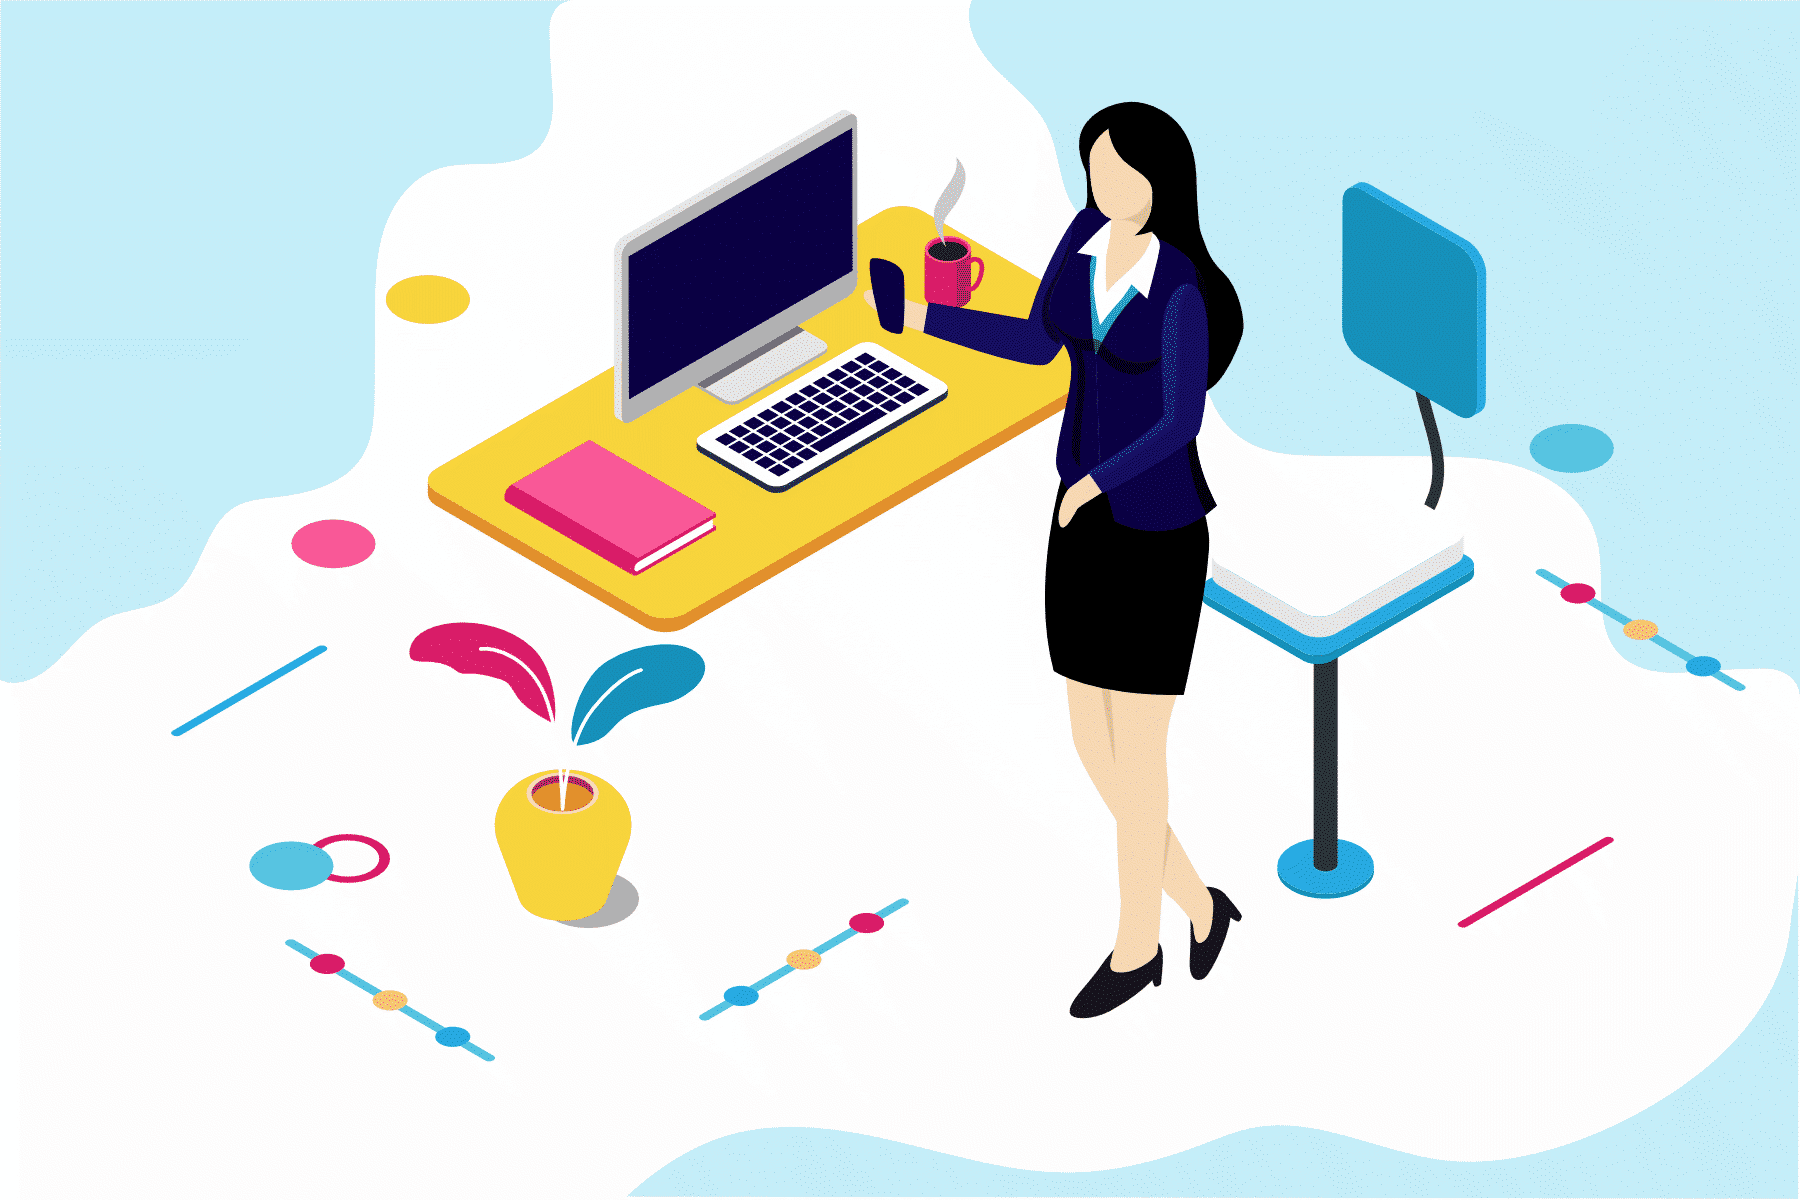 illustration of woman business owner